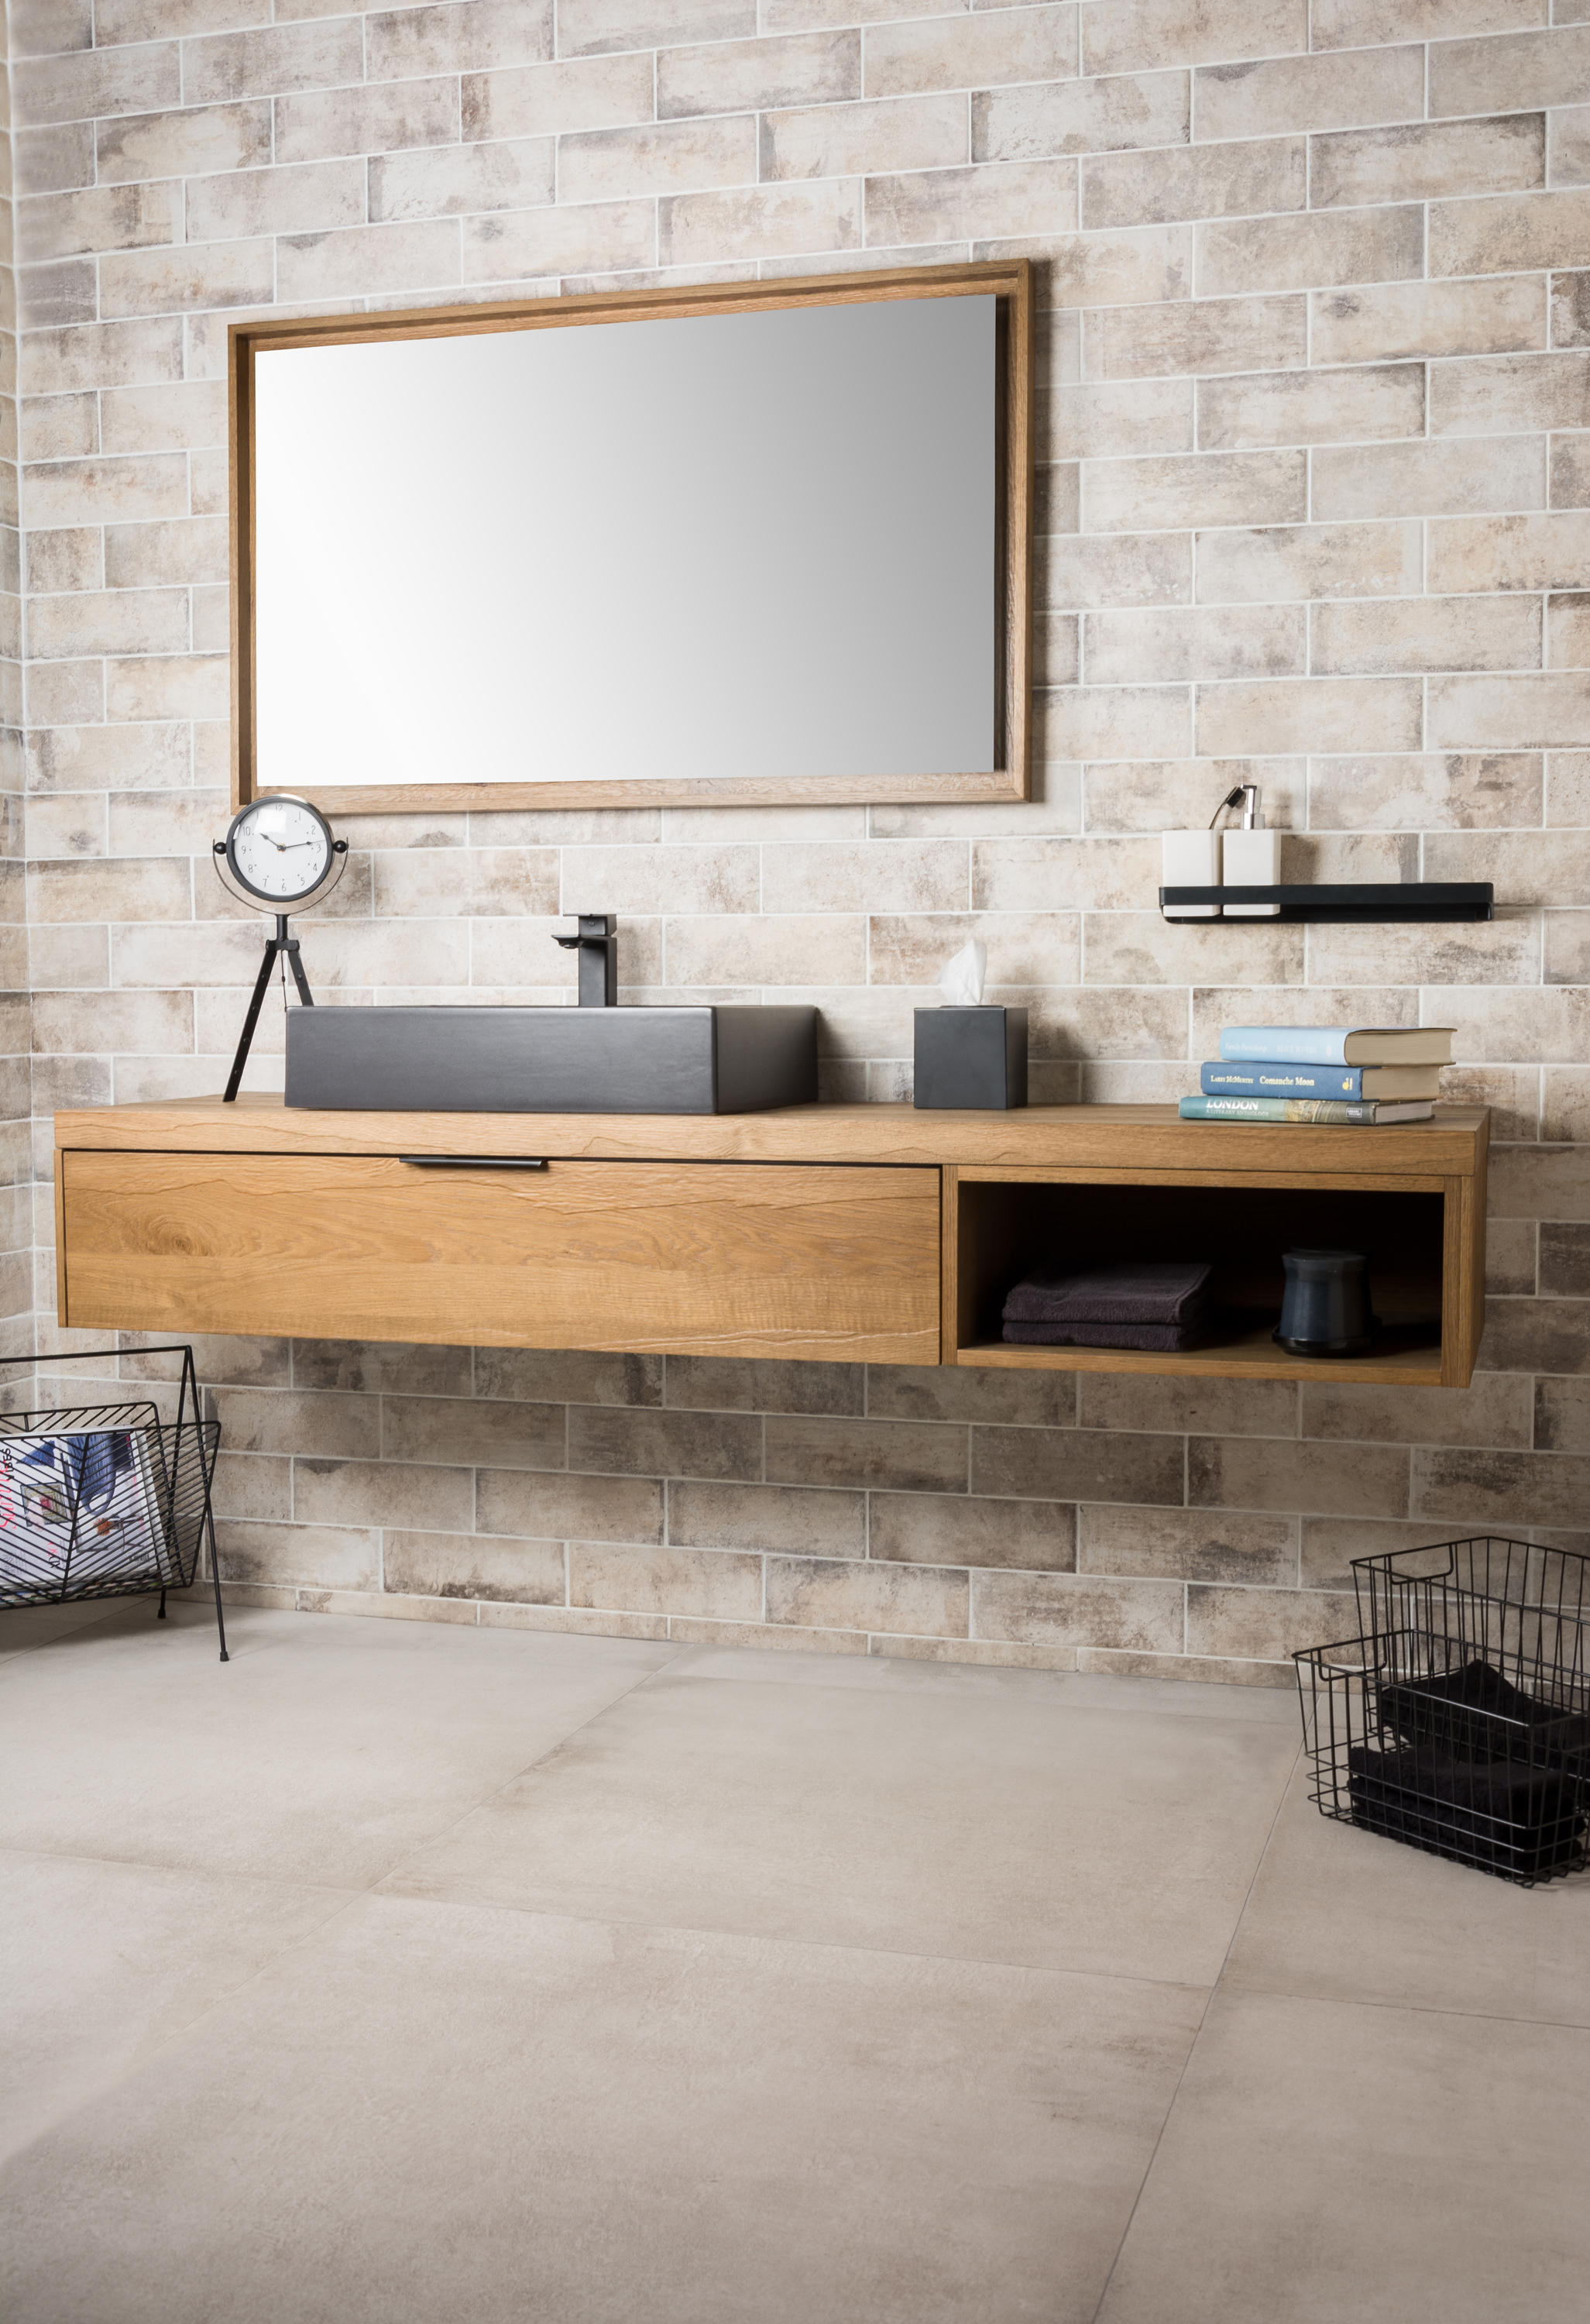 Bagno Design Bradford Harlem Countertop 634mm Bath Shelves From Bagnodesign Architonic